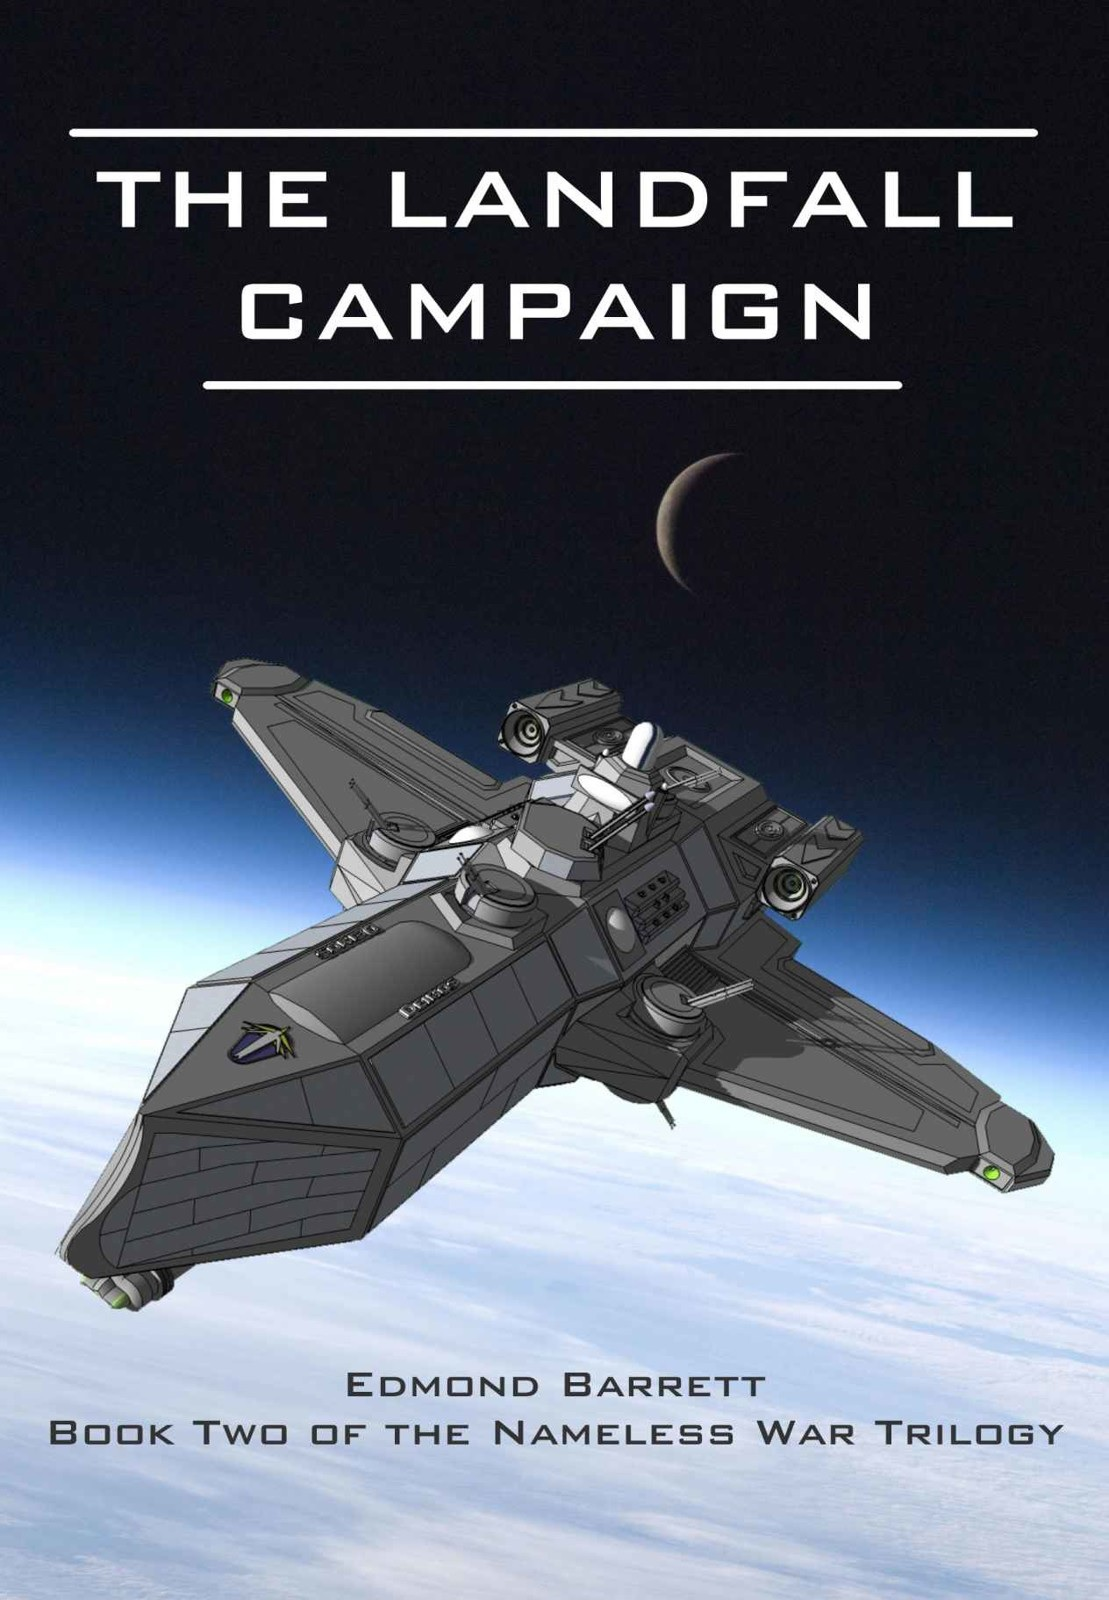 The Landfall Campaign – The Nameless War continues in another good book.